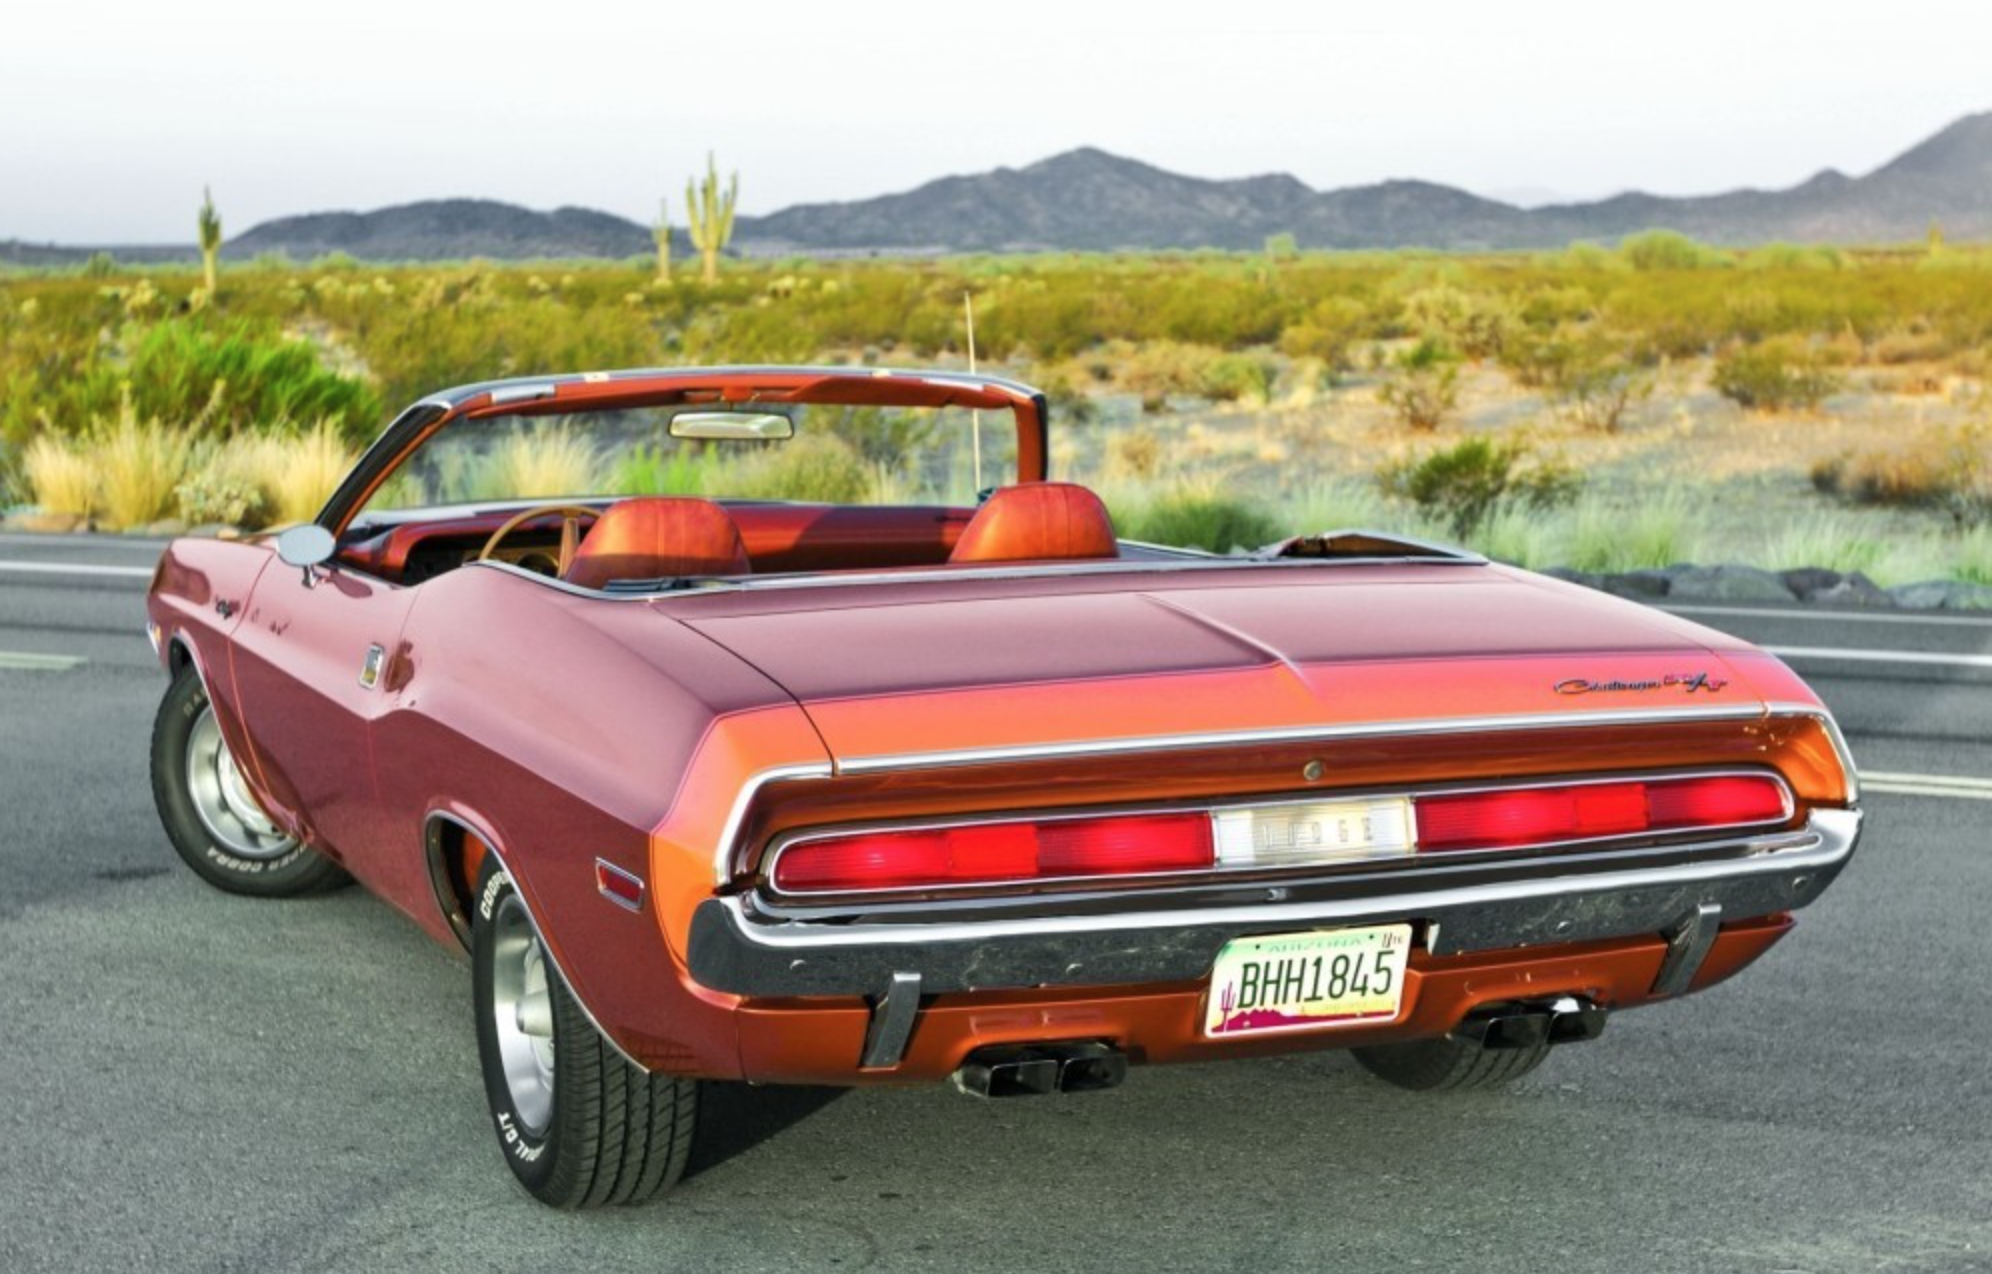 1970 dodge challenger r t convertible 383 cubic inch motor and a 4 speed hurst pistol grip manual shift rare color combo [ 1992 x 1274 Pixel ]